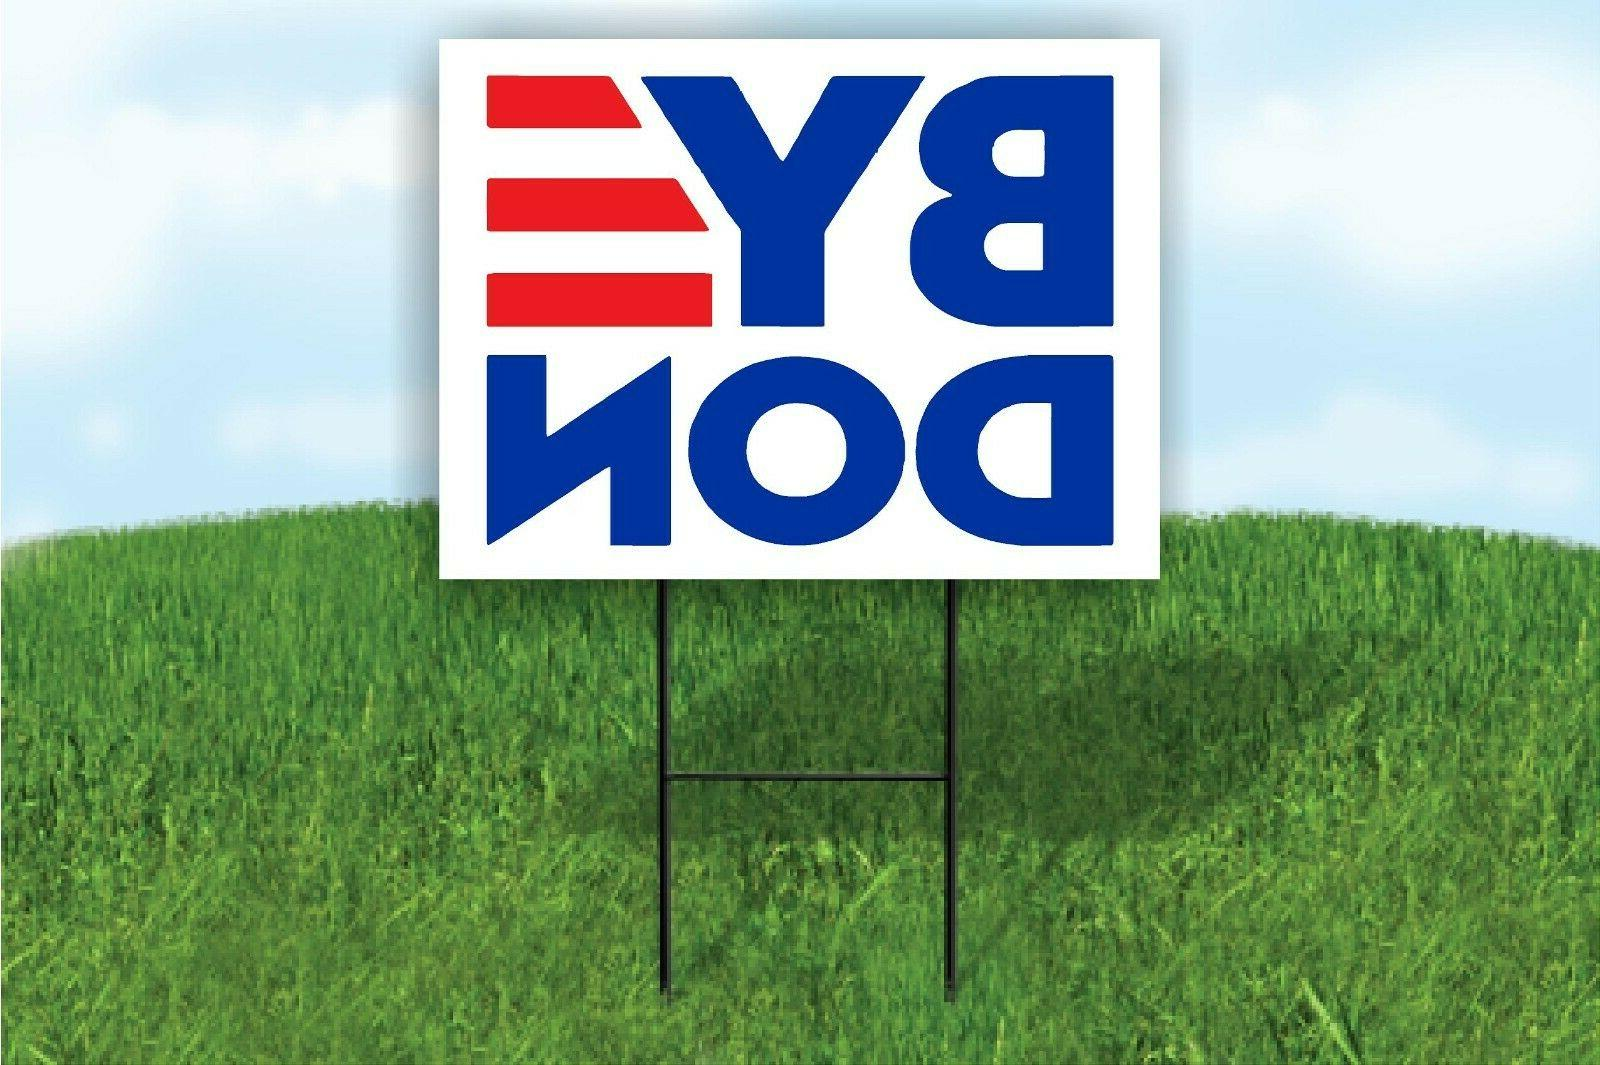 byedon 2020 for president joe biden yard